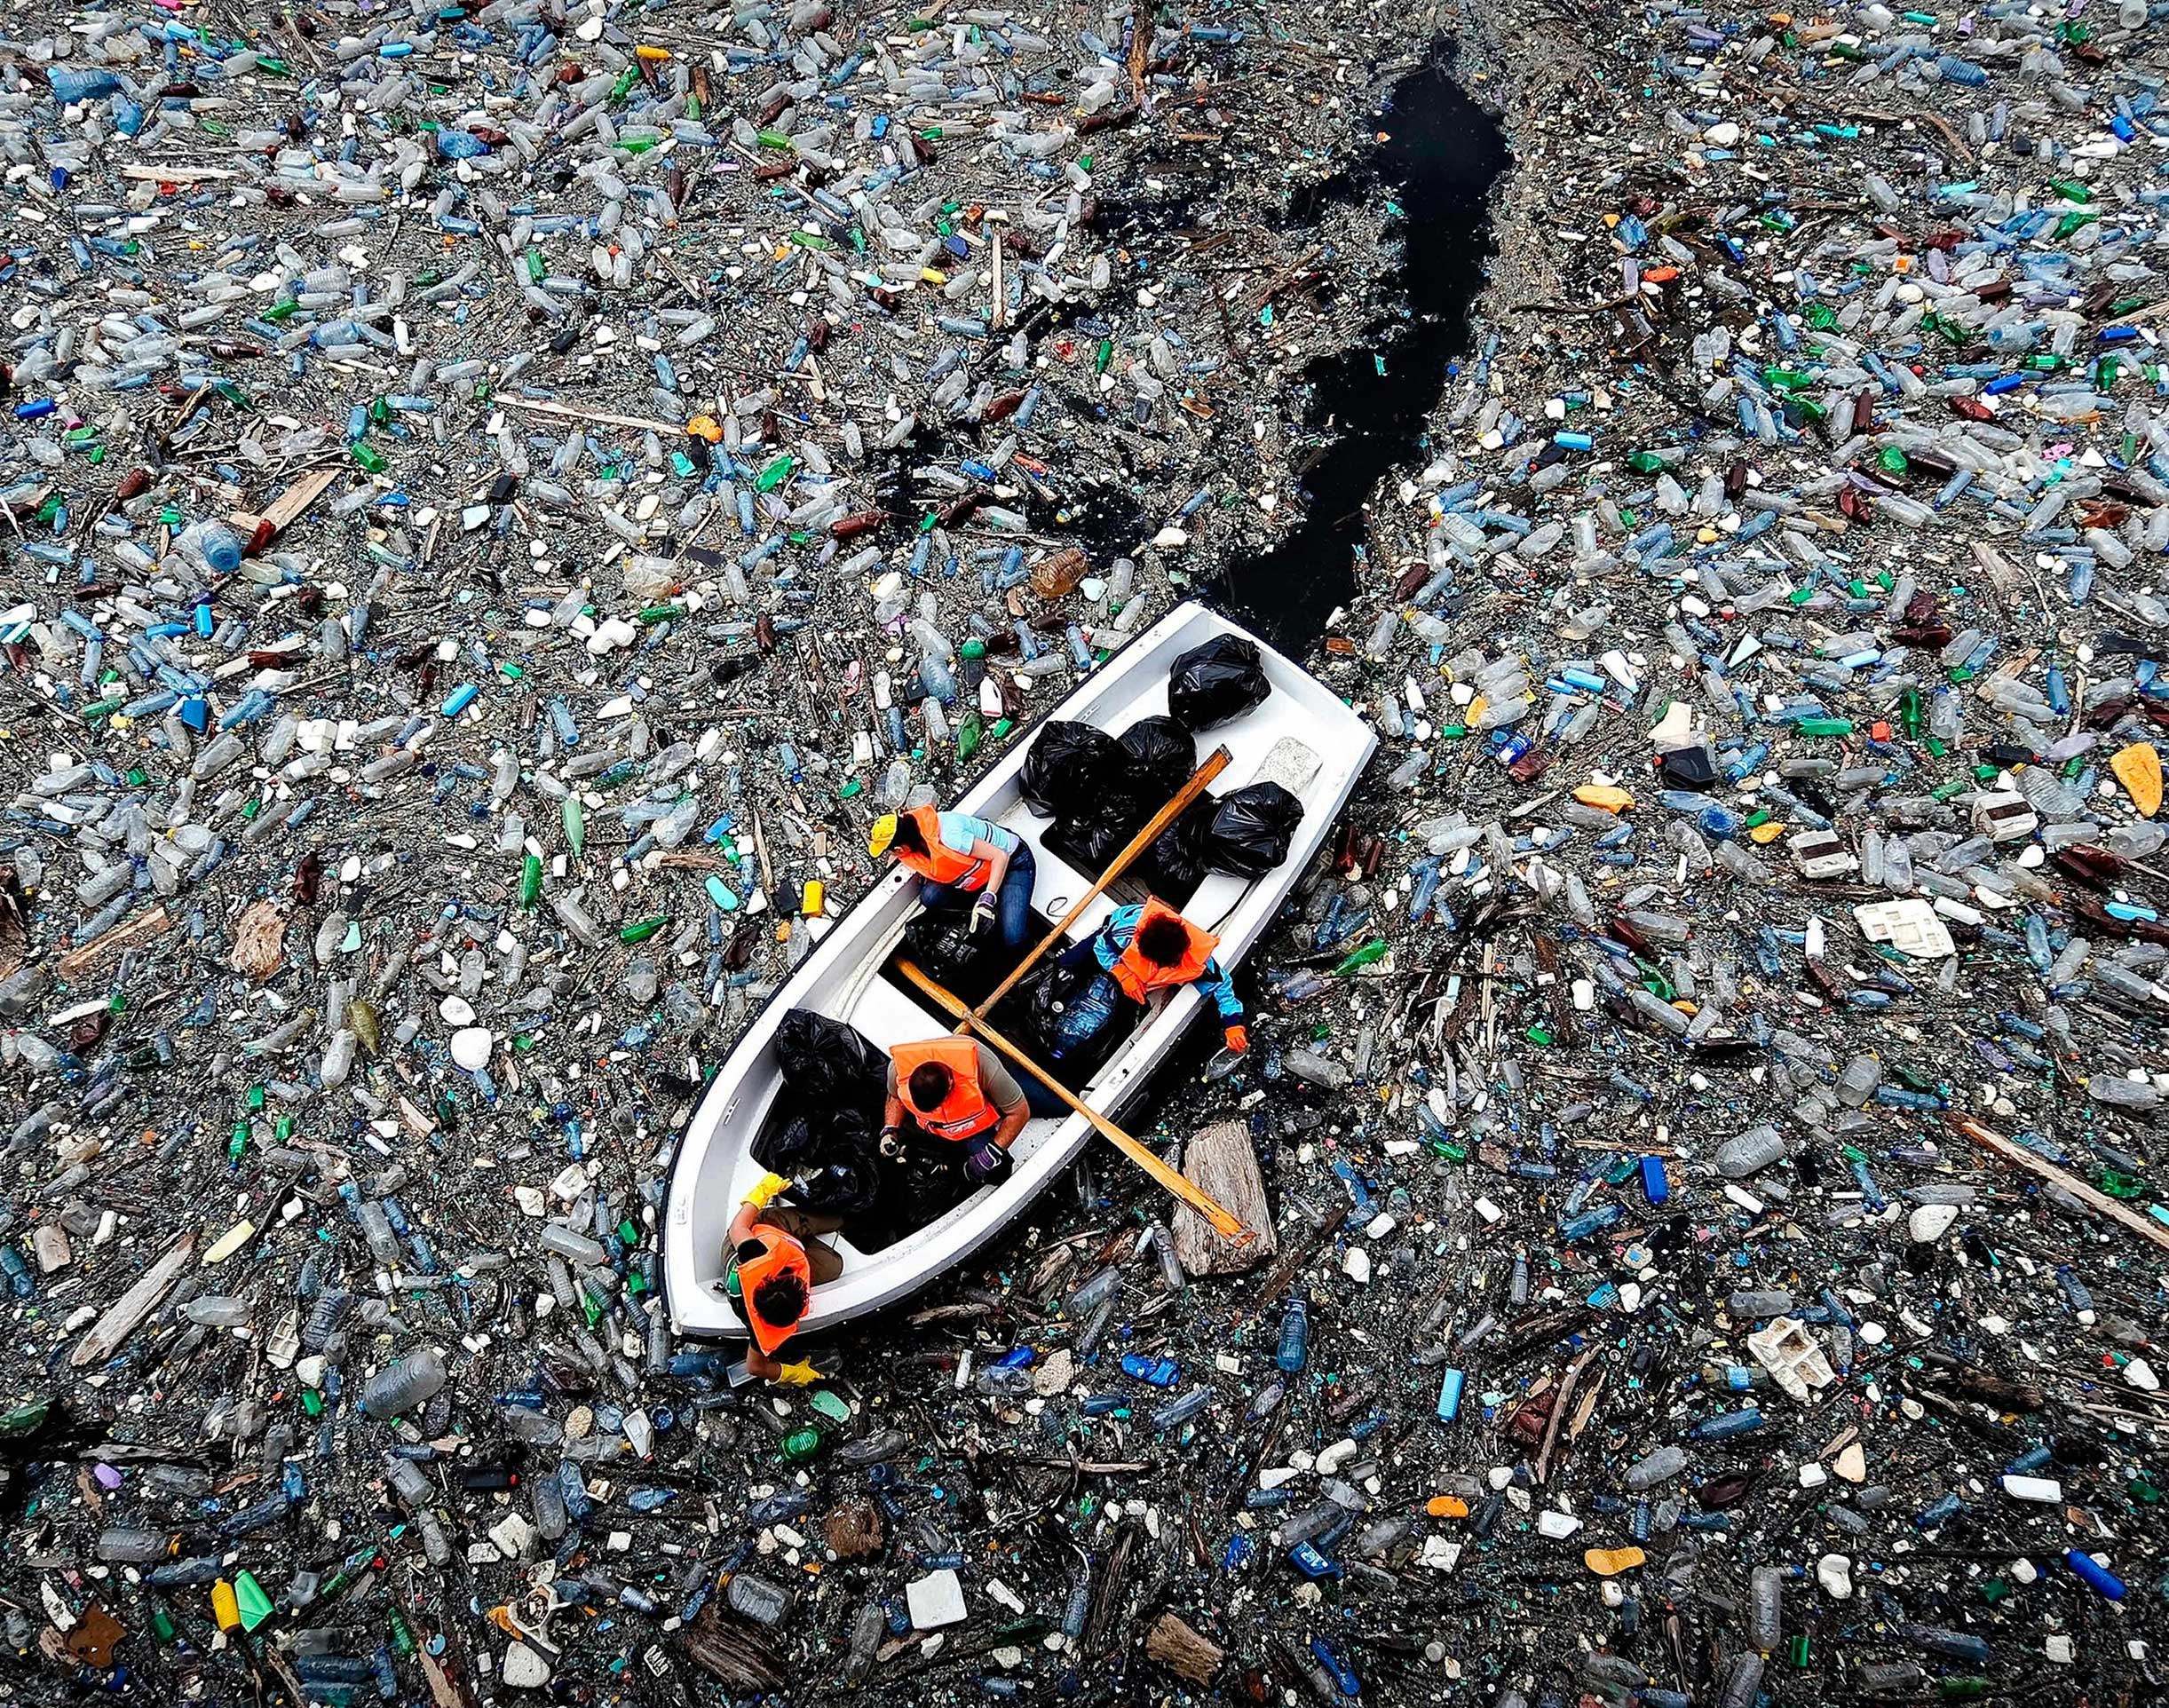 Plastic floating around on the water surface is a possible source for crude oil recirculation.